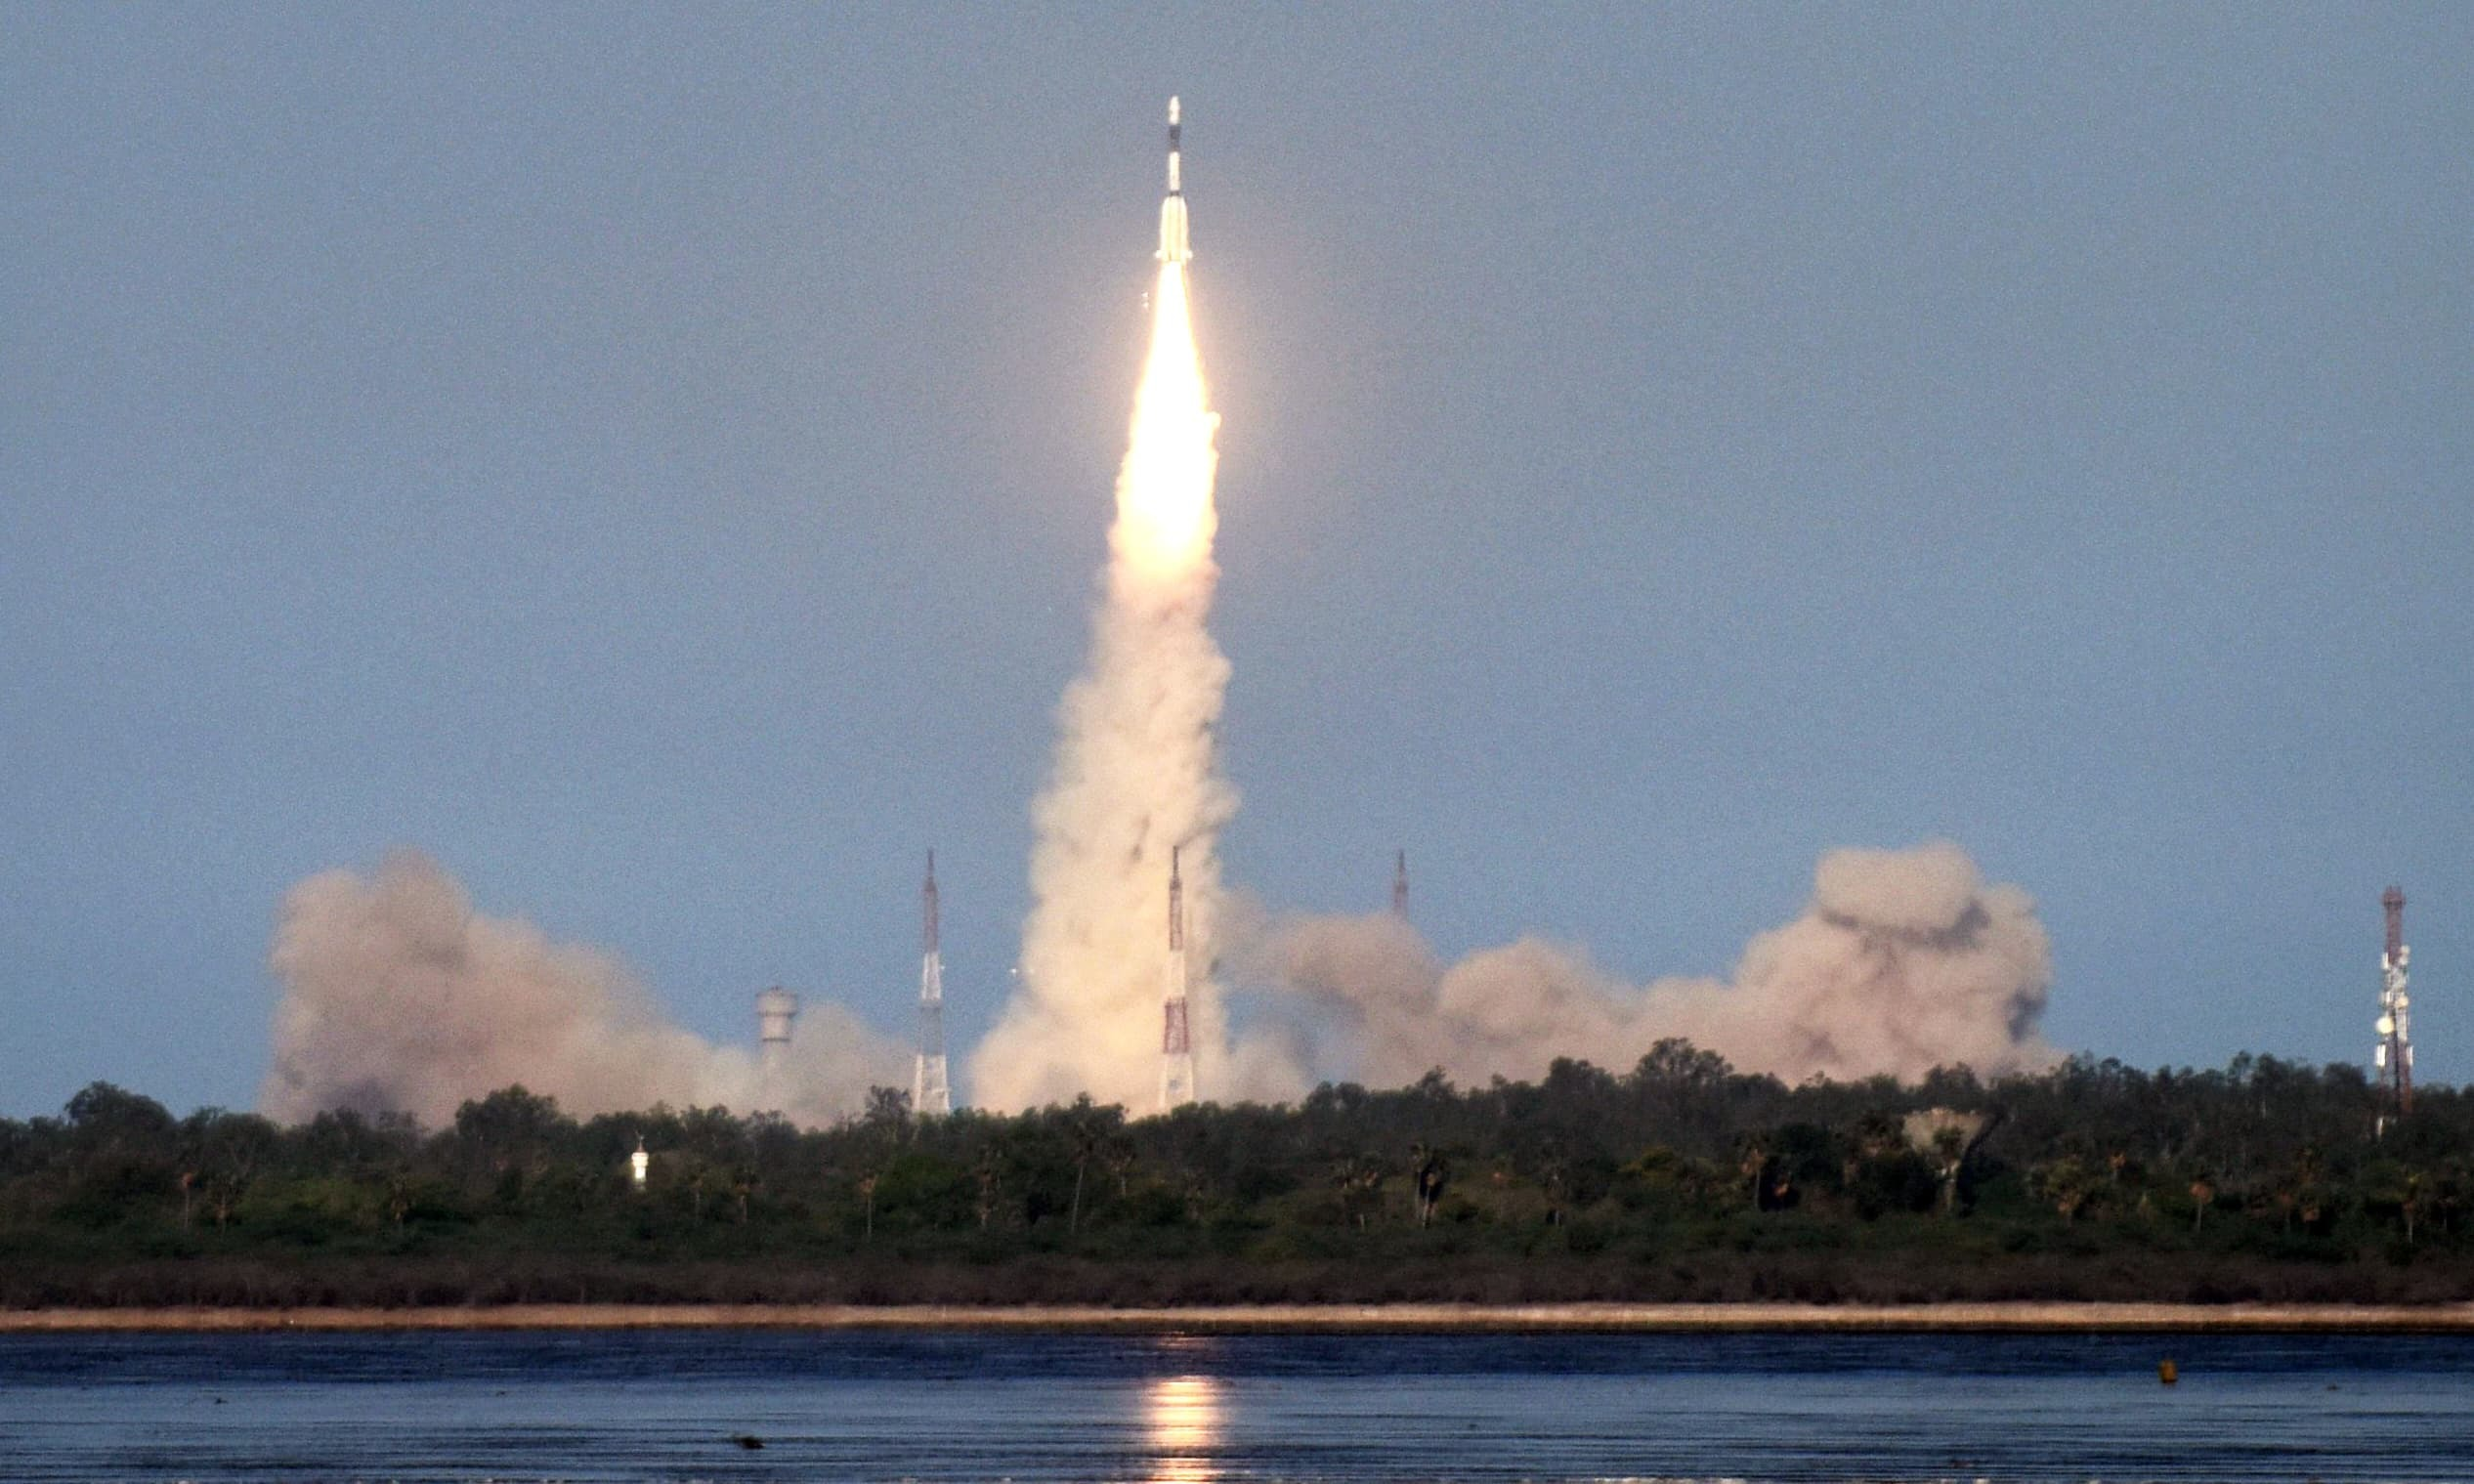 In this file photo, the Indian Space Research Organisation's GSAT-9 on board the Geosynchronous Satellite Launch Vehicle (GSLV-F09), launches in Sriharikota in the state of Andhra Pradesh. —AFP/File